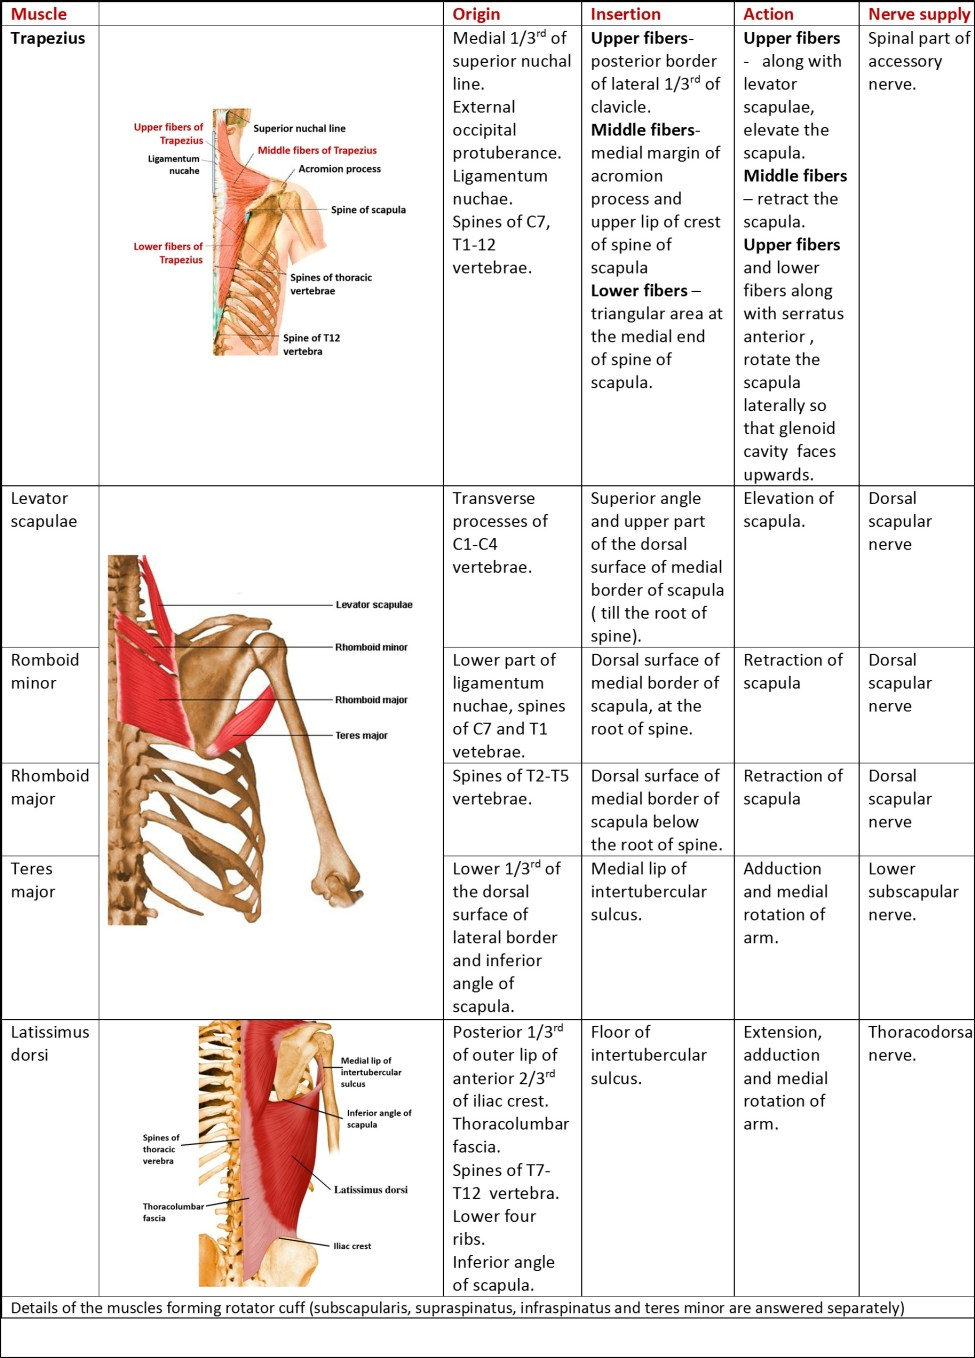 muscles of scapular region - origin,insertion,action and nerve supply